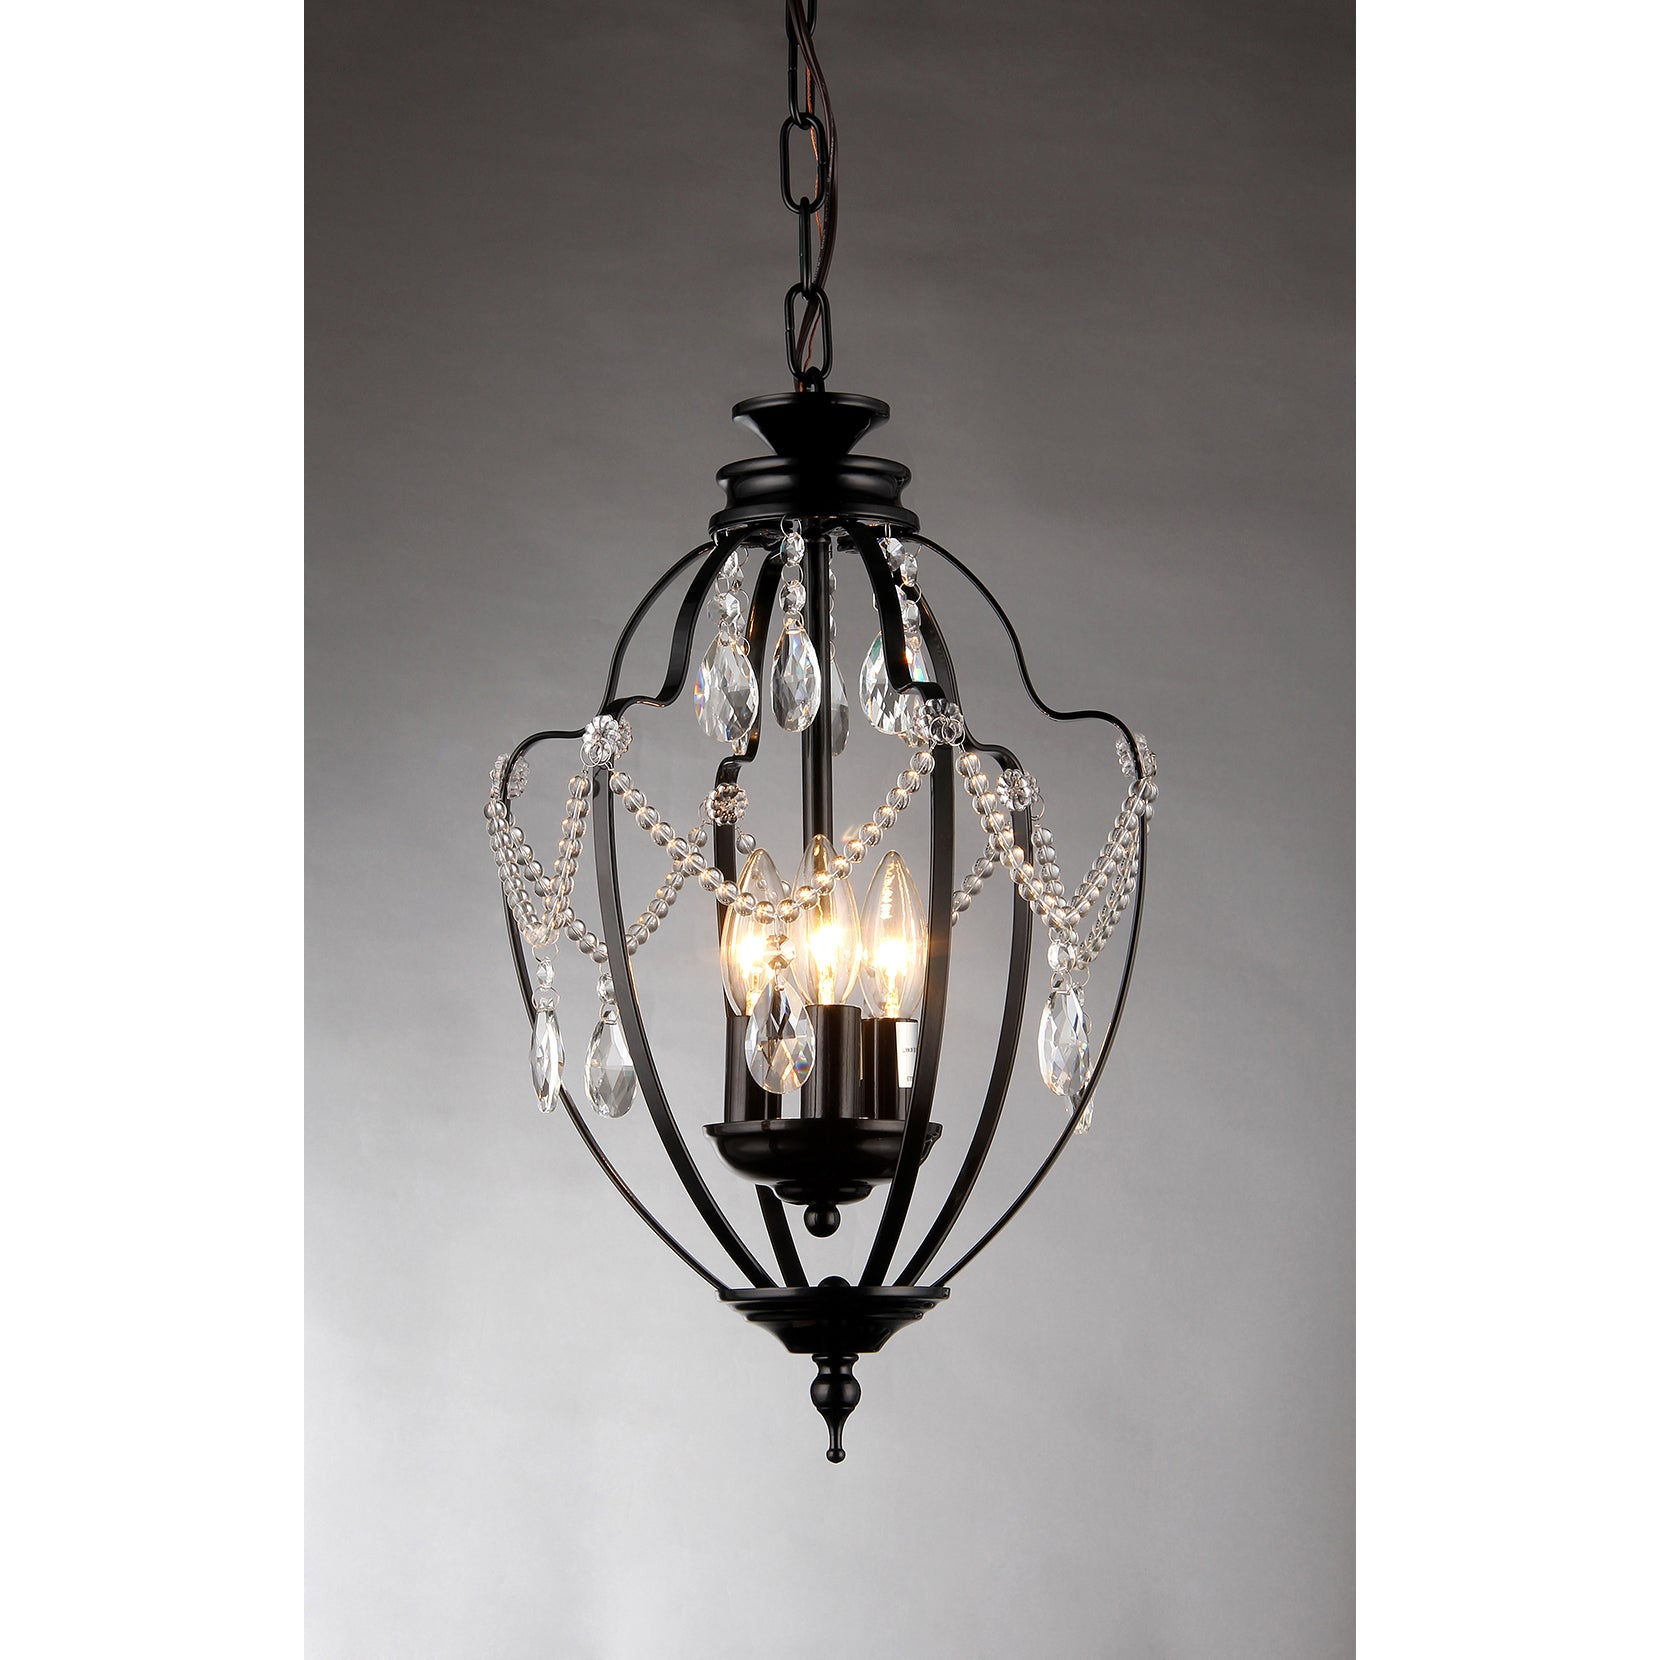 Kennedy 3 light black finish 11 inch crystal chandelier free kennedy 3 light black finish 11 inch crystal chandelier free shipping today overstock 18318683 aloadofball Images